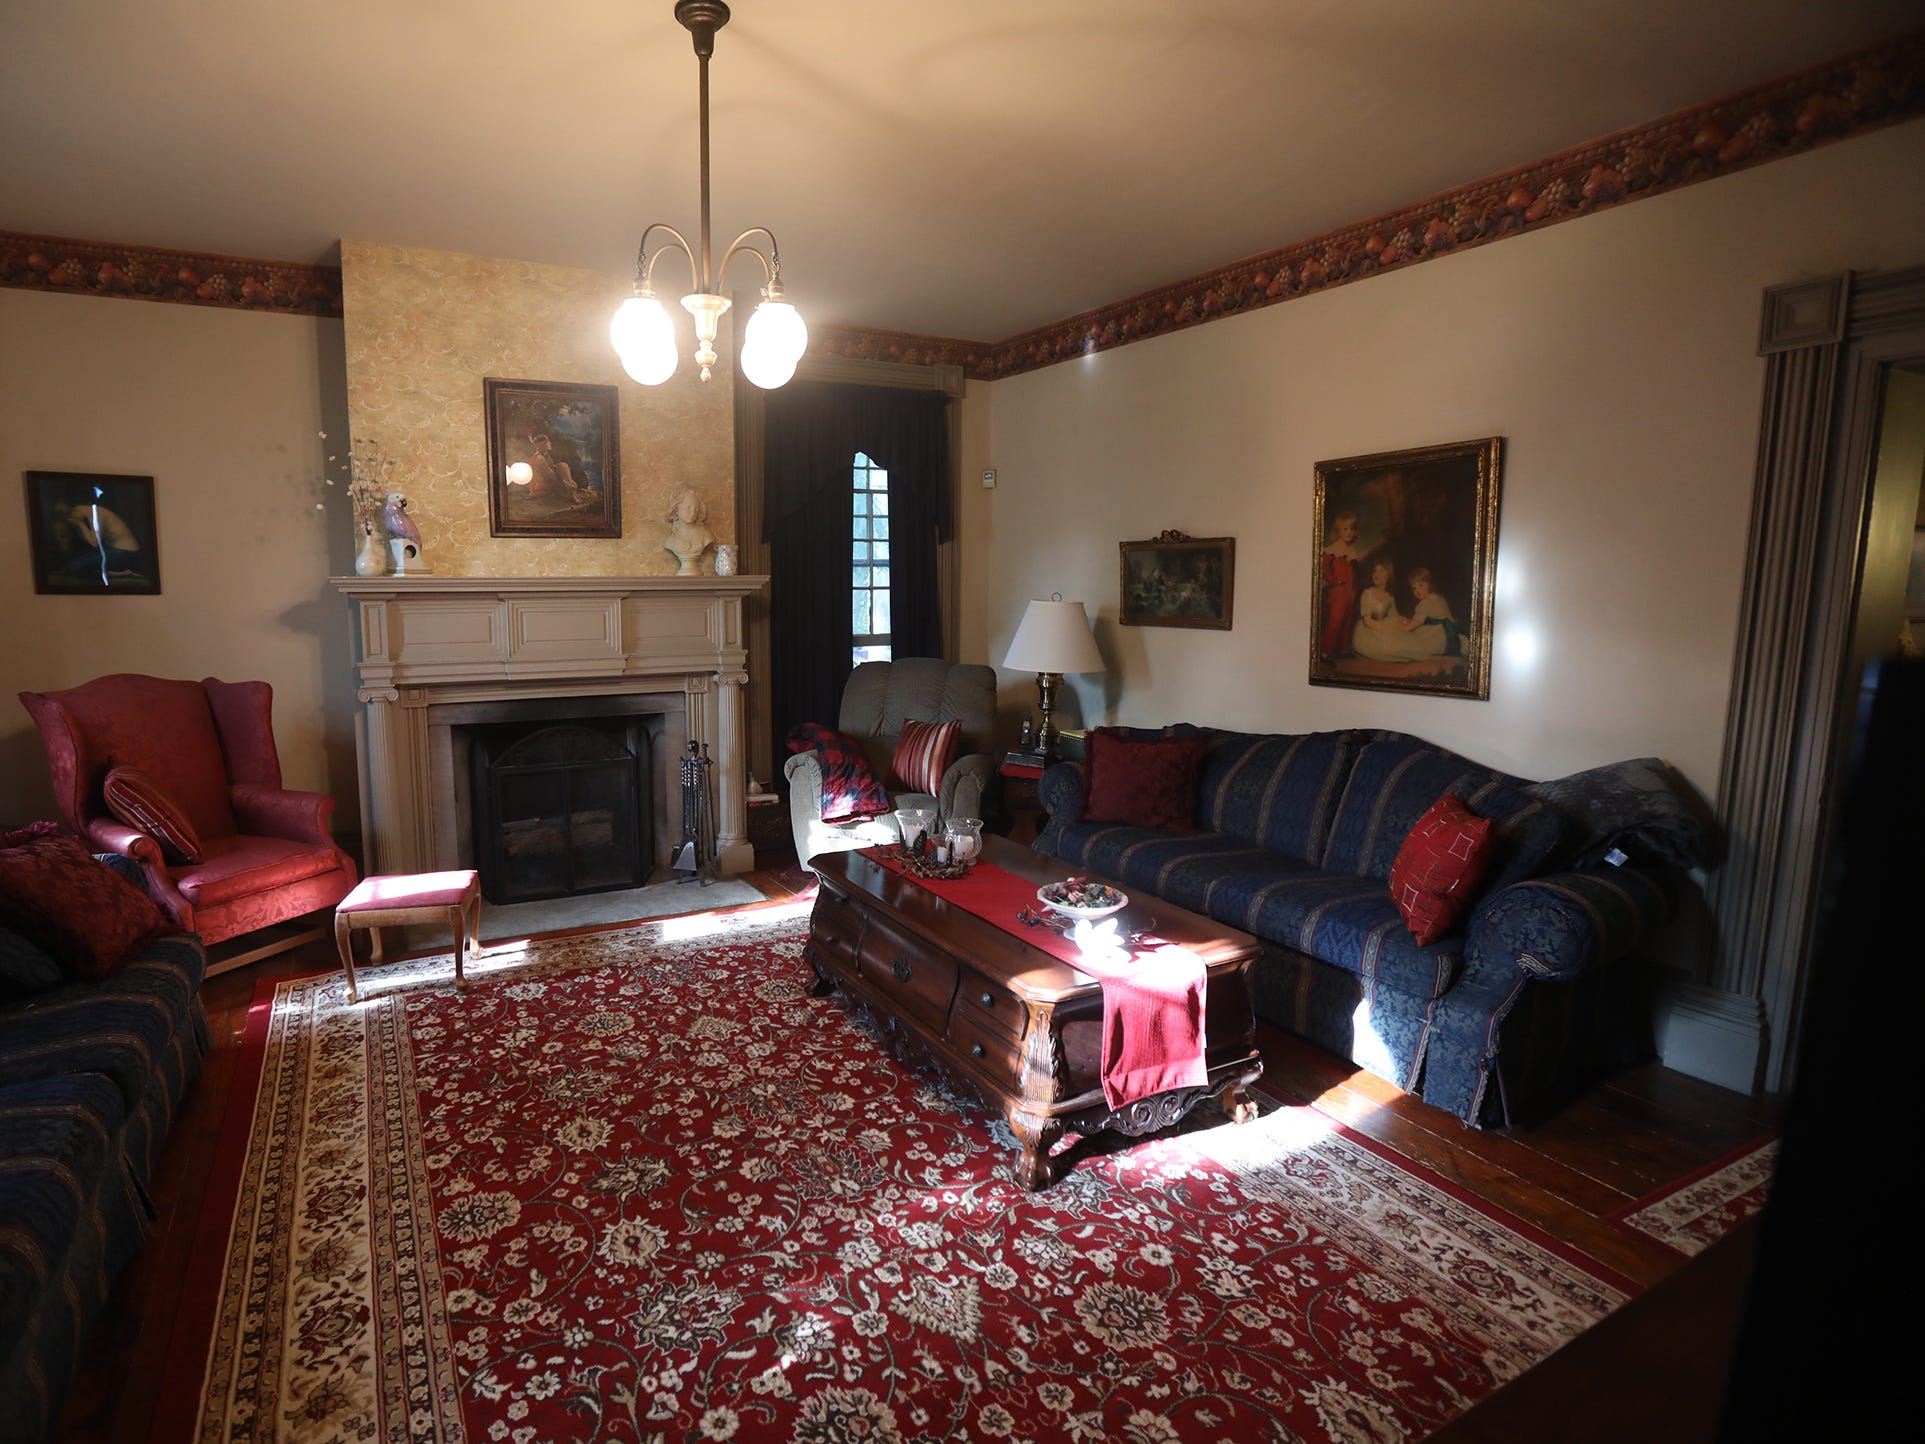 There are four fireplaces in the home; the living room is home to one of them.  The light fixtures in the living room, den, and hallway were originally gas lights but have been converted to electric.